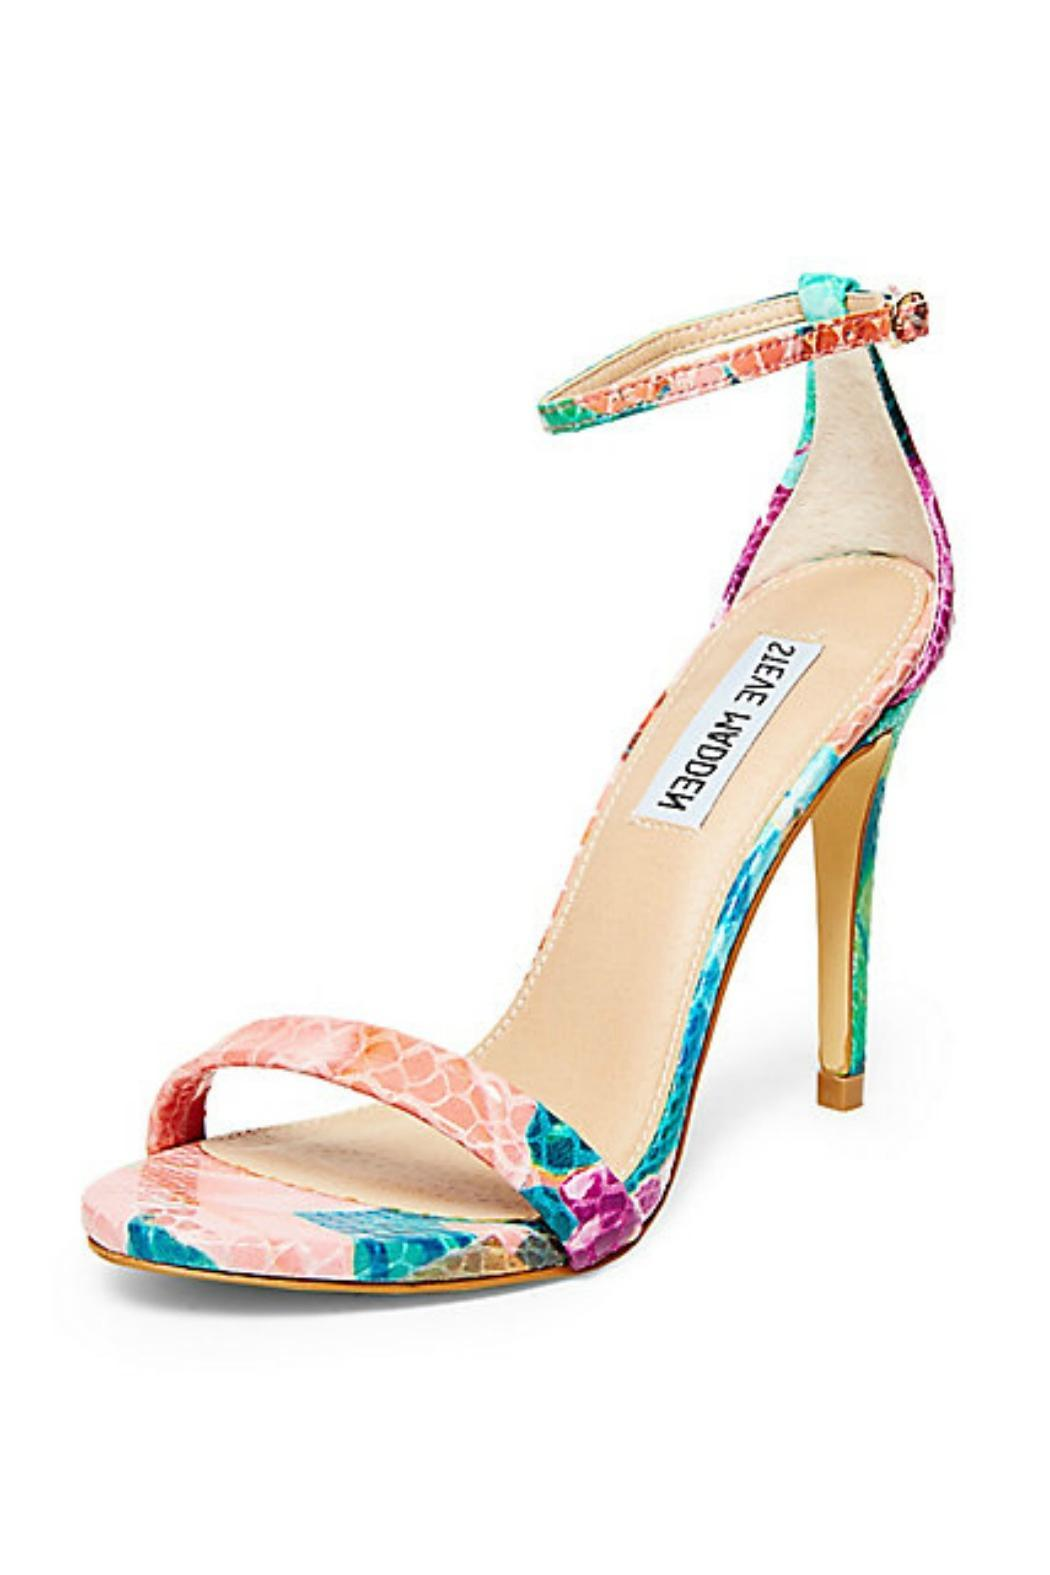 dd9bcedf8aa Steve Madden Stecy Floral from Texas by Laura s Line — Shoptiques